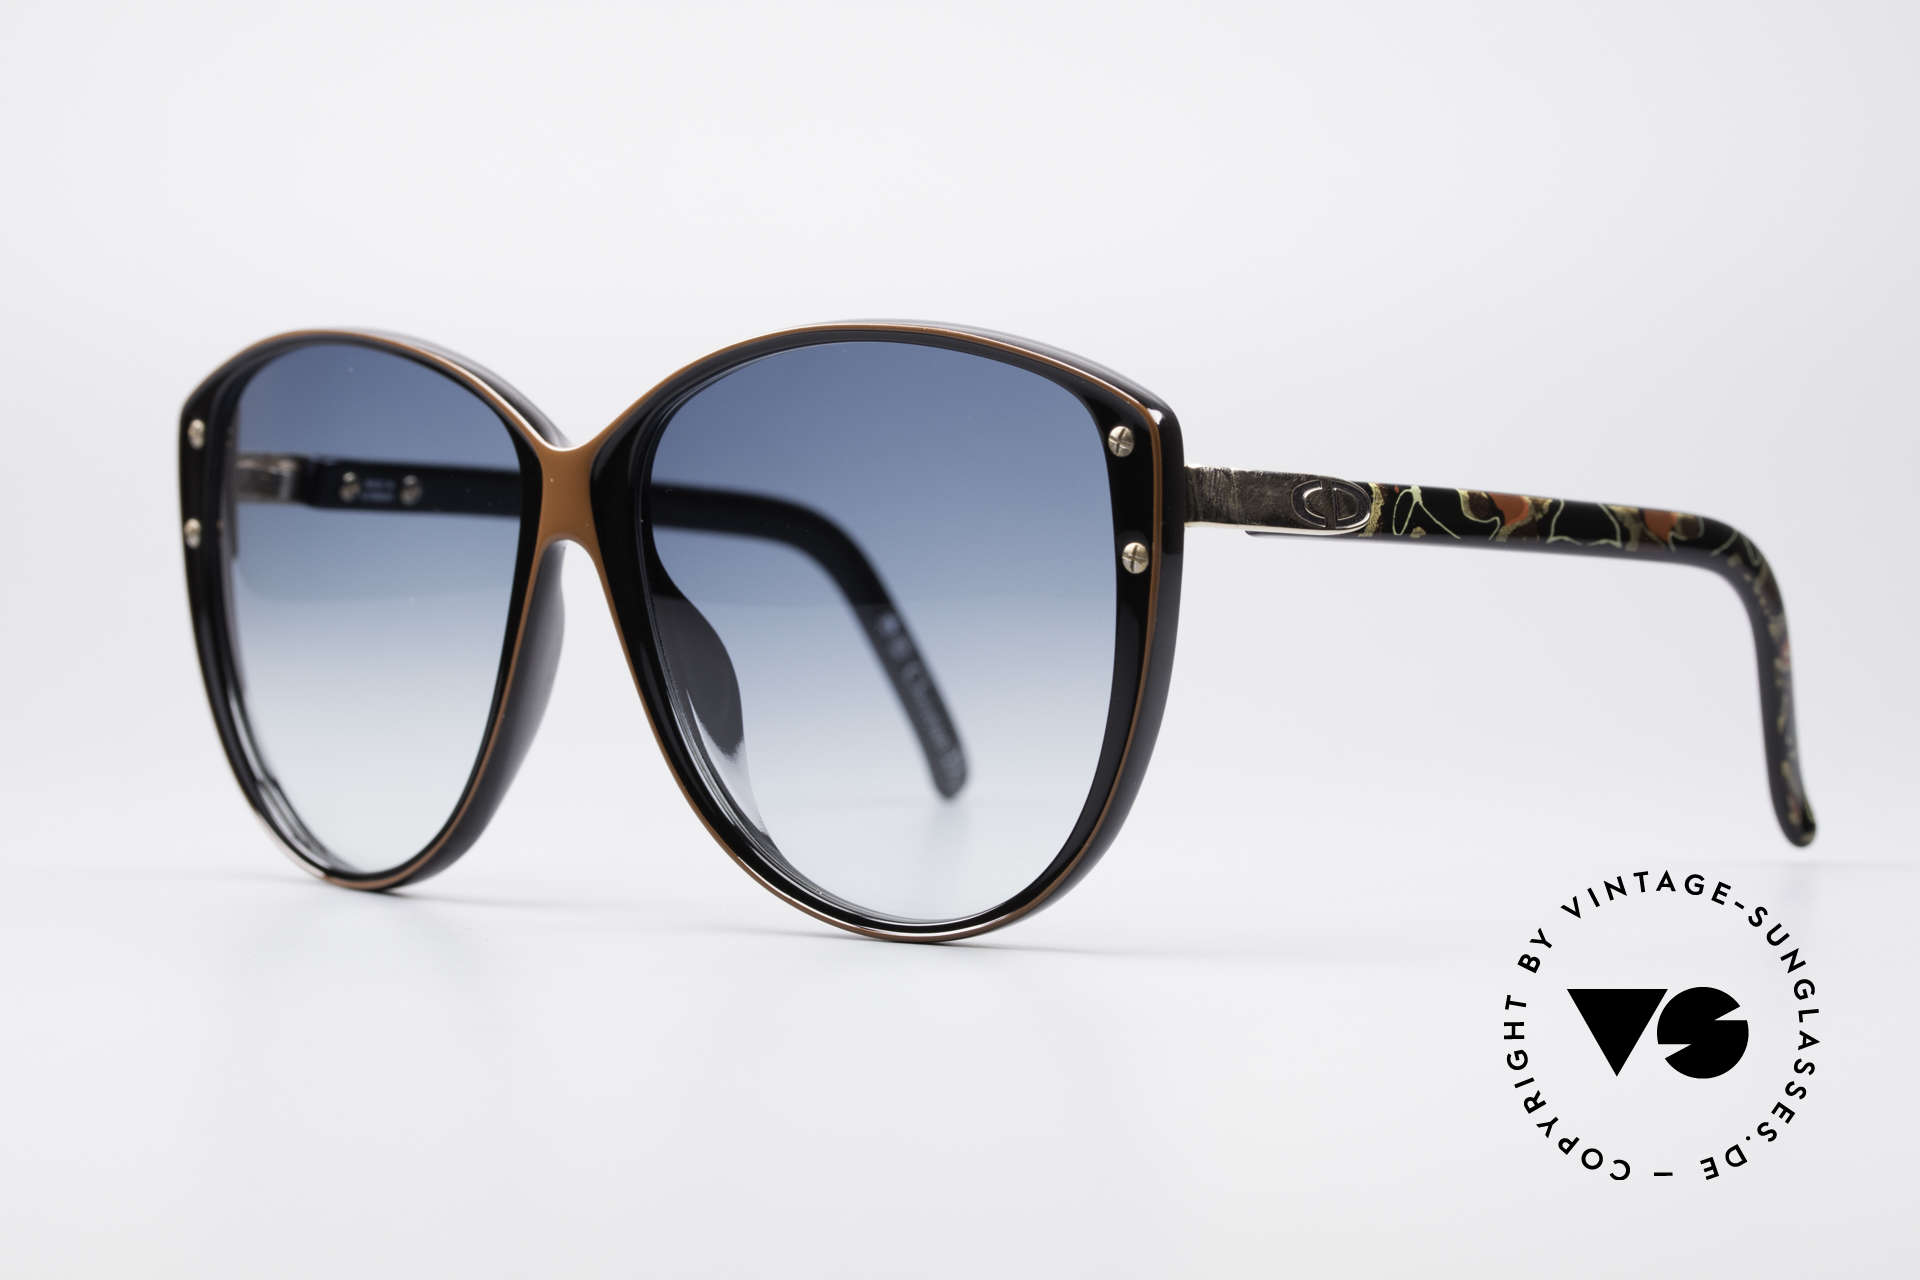 Christian Dior 2277 XL 70's Ladies Sunglasses, perfect 70's flair with floral pattern on the temples, Made for Women